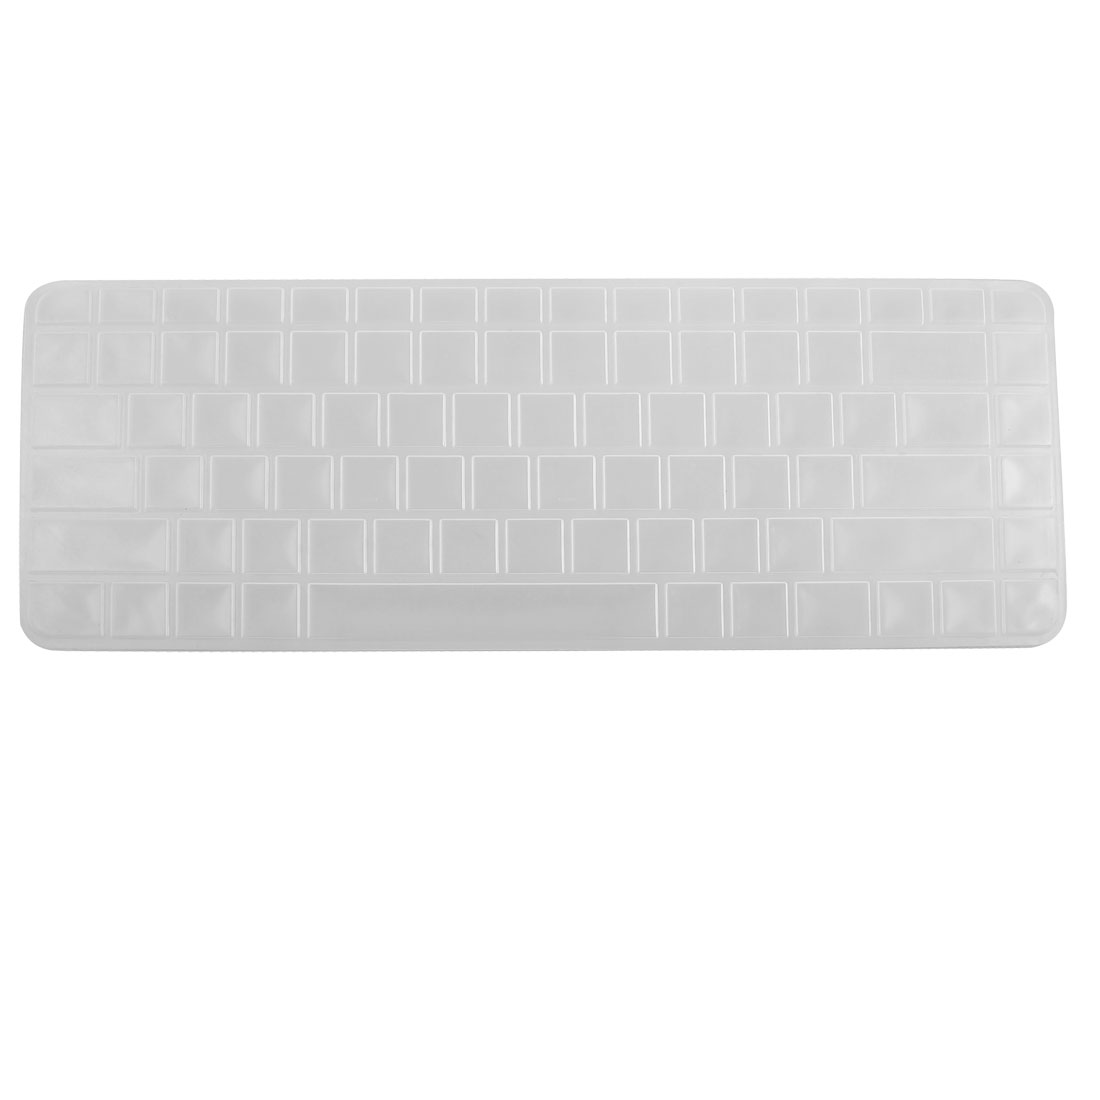 Clear White Silicone Keyboard Protective Cover Film for HP CQ42